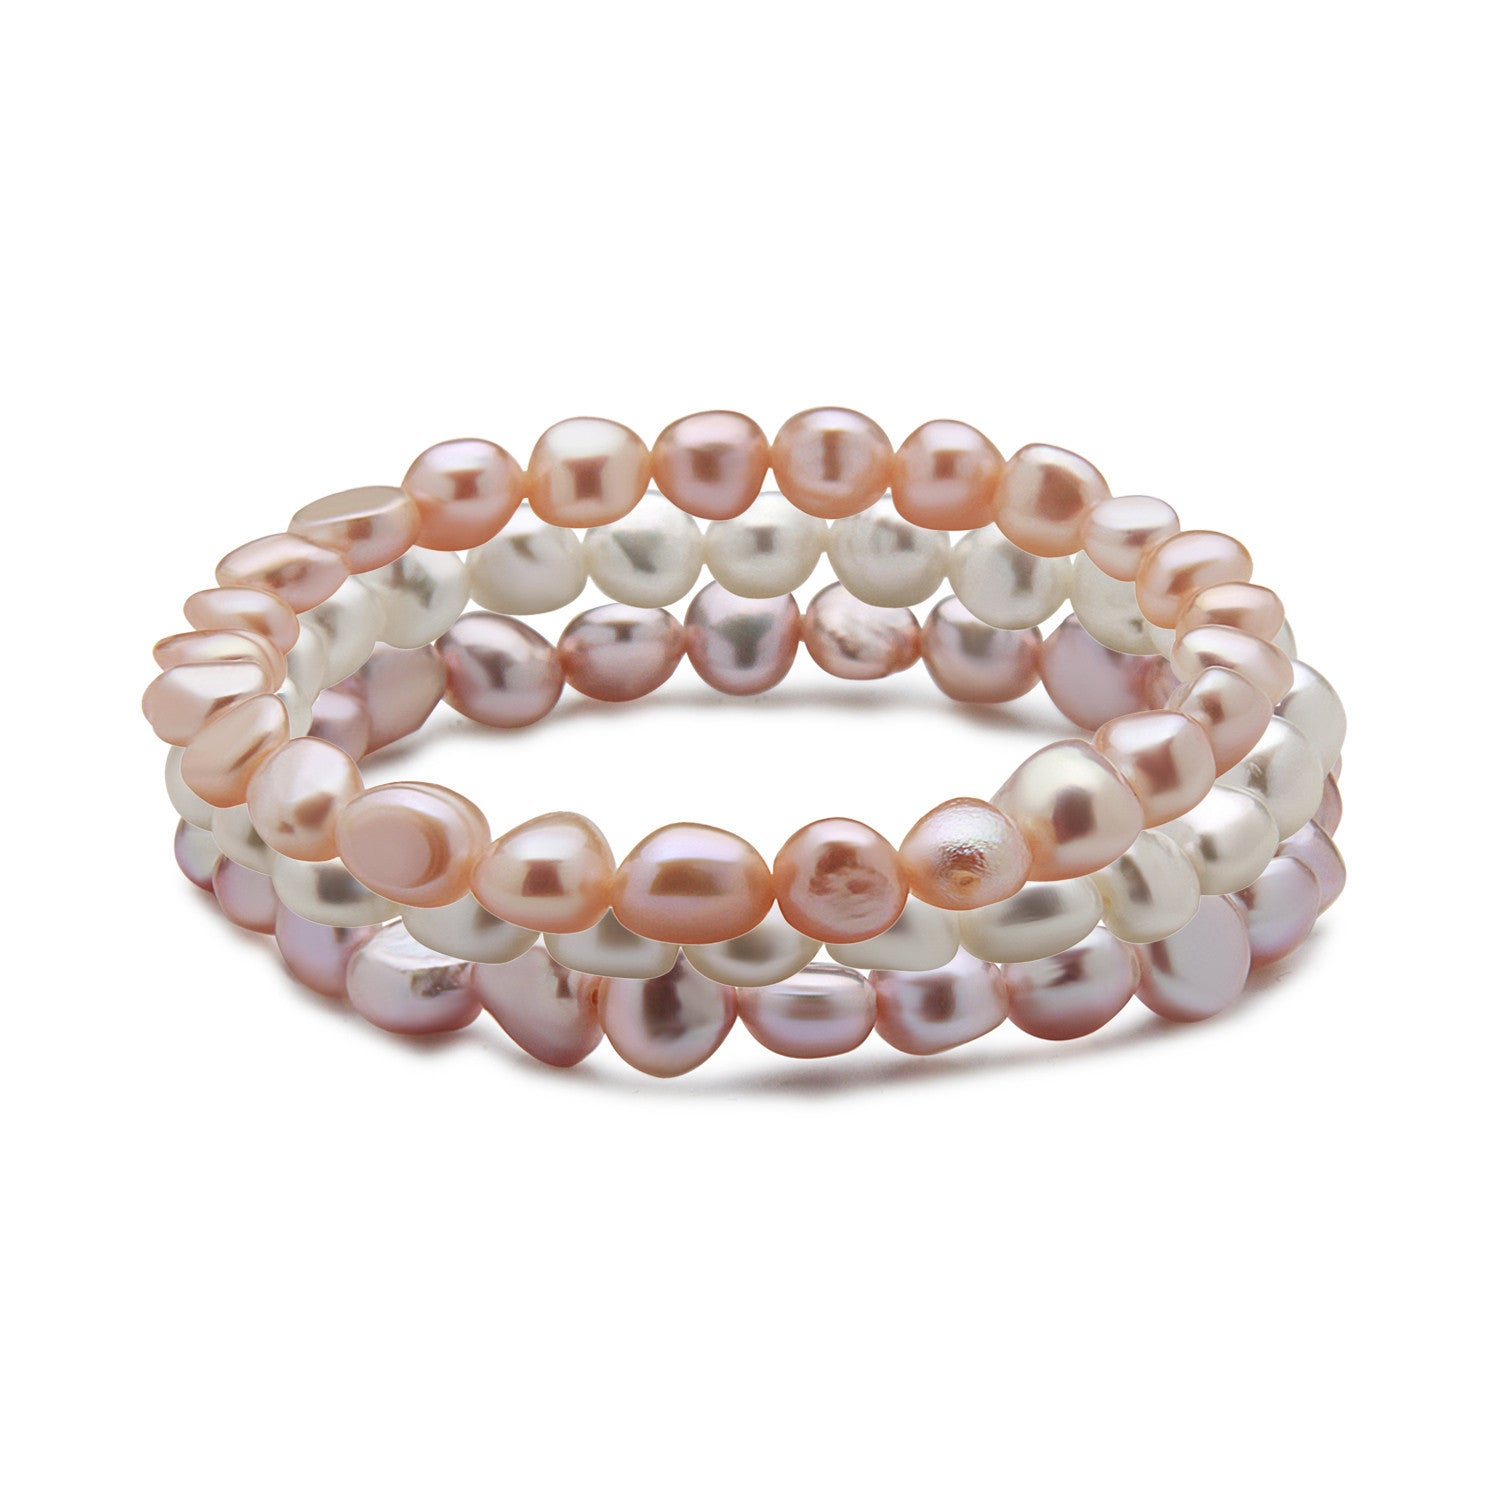 Set of 3 Freshwater Cultured Pearl Stretch Bracelets